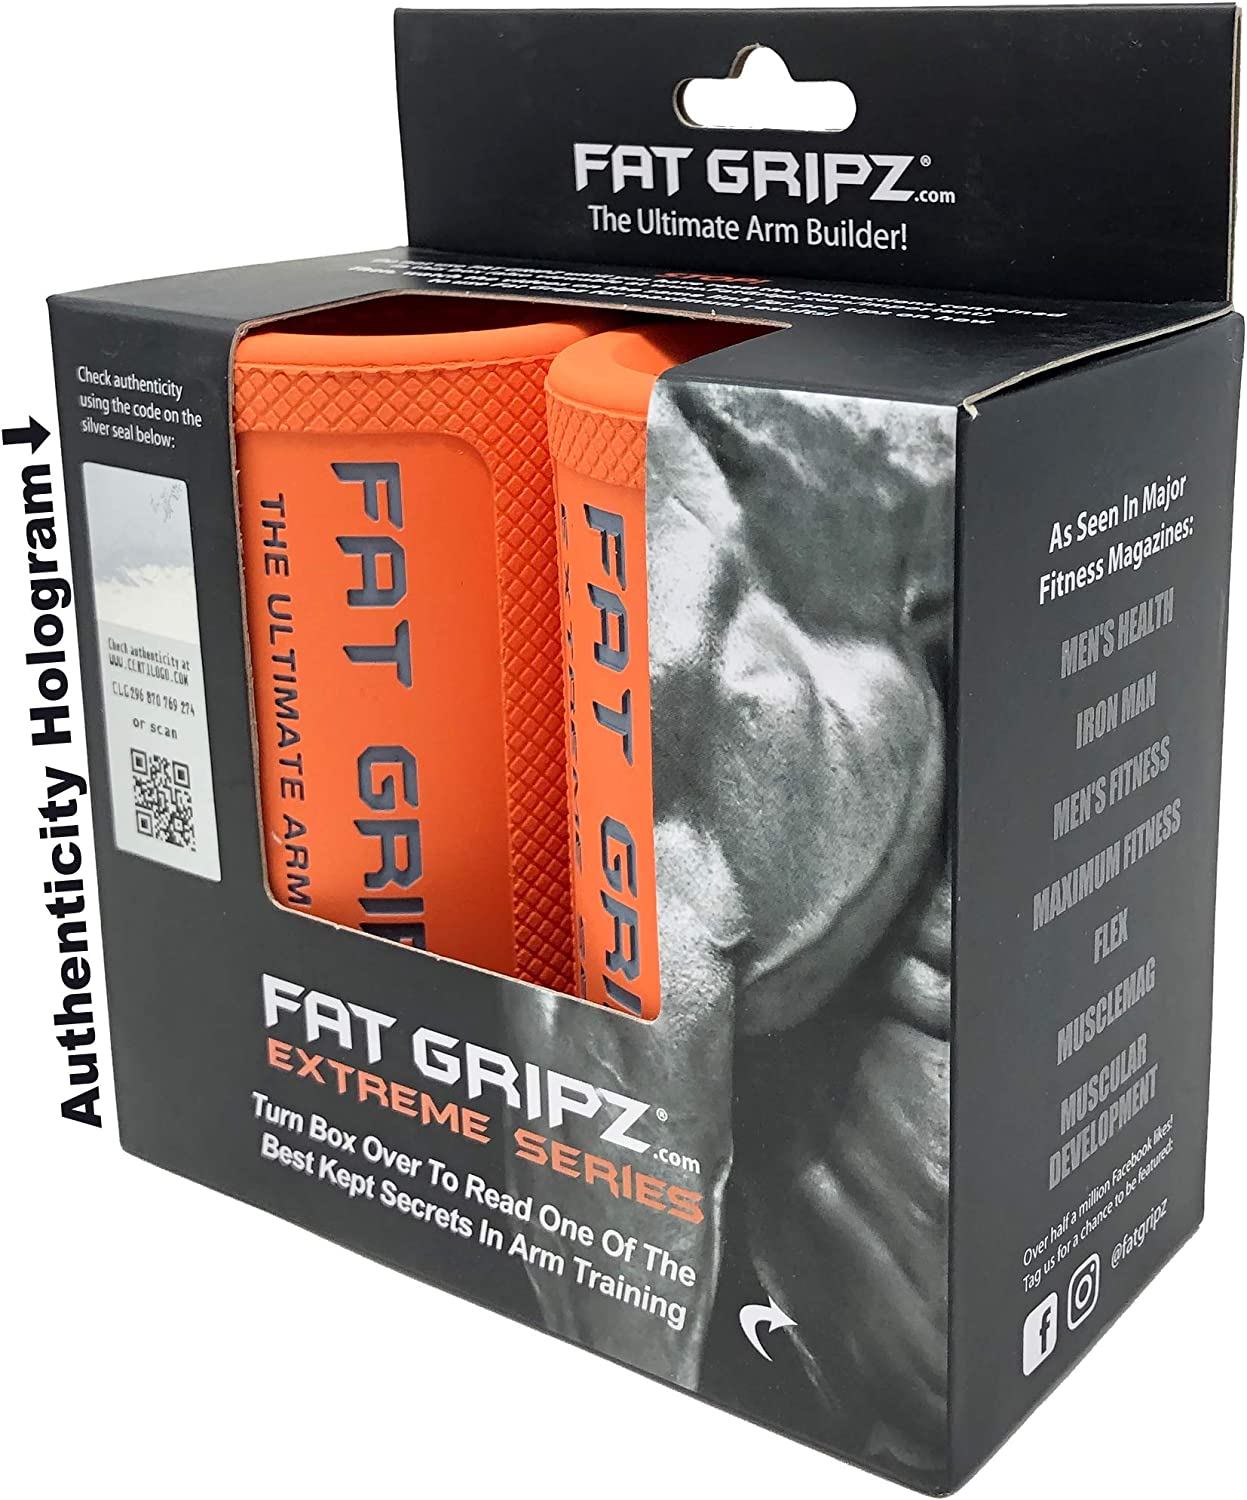 Fat Gripz Extreme 2.75 Inch Attention brand Diameter quality assurance Outer